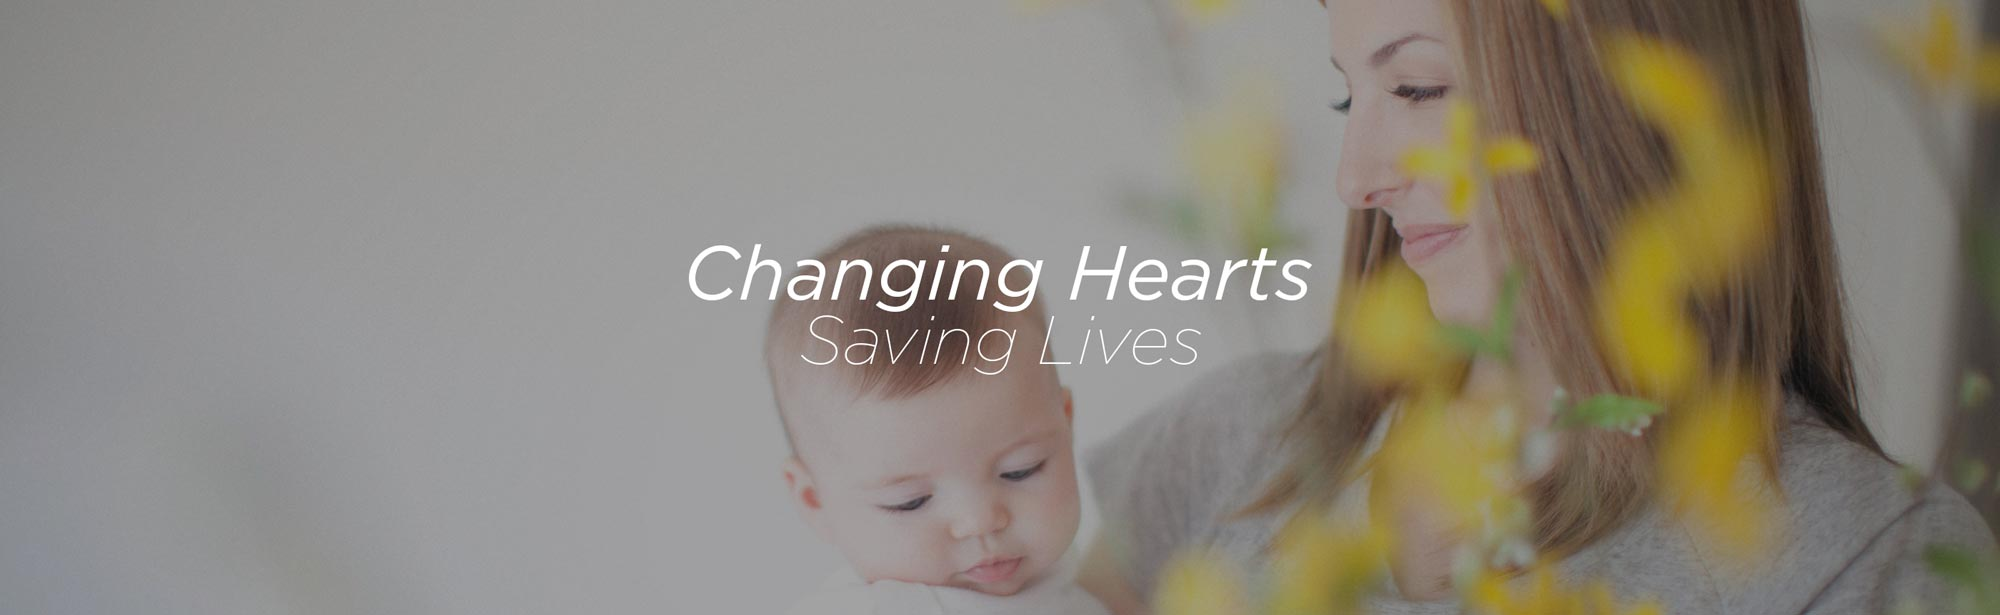 Changing Hearts - Saving Lives - Hope Pregnancy Center